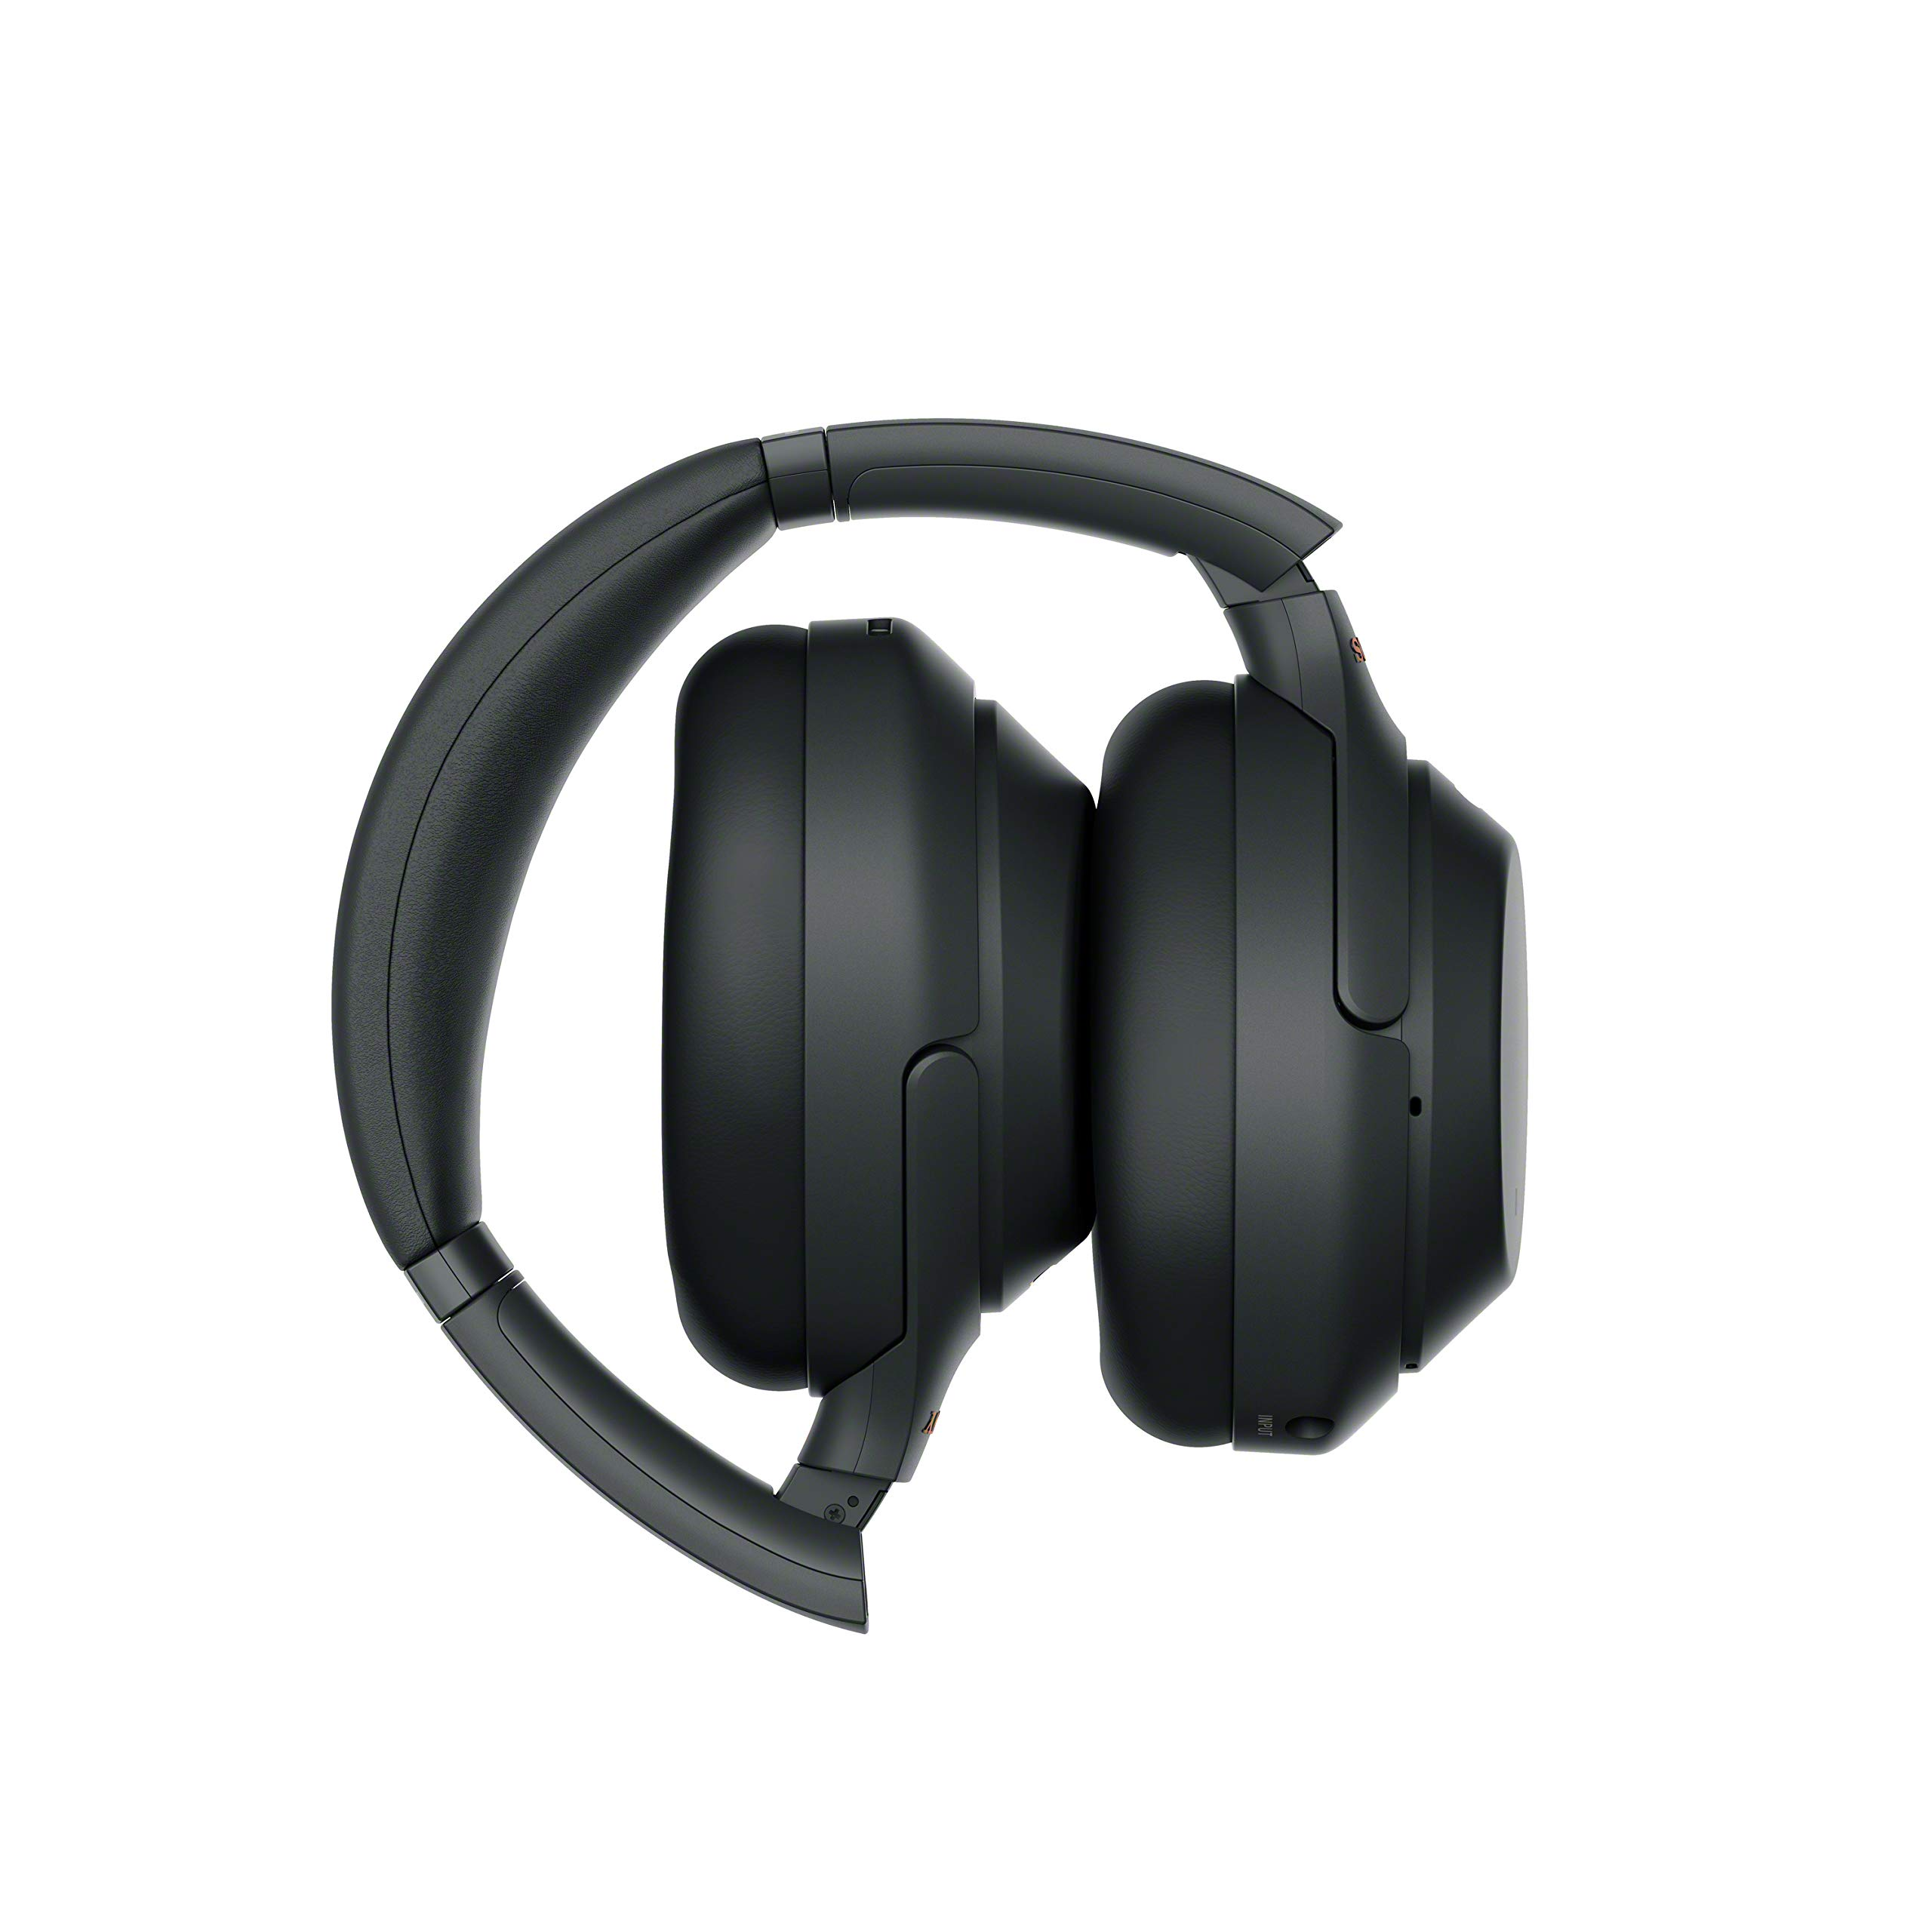 Sony WH1000XM3 Bluetooth Wireless Noise Canceling Headphones, Black WH-1000XM3/B (Renewed) by Sony (Image #7)